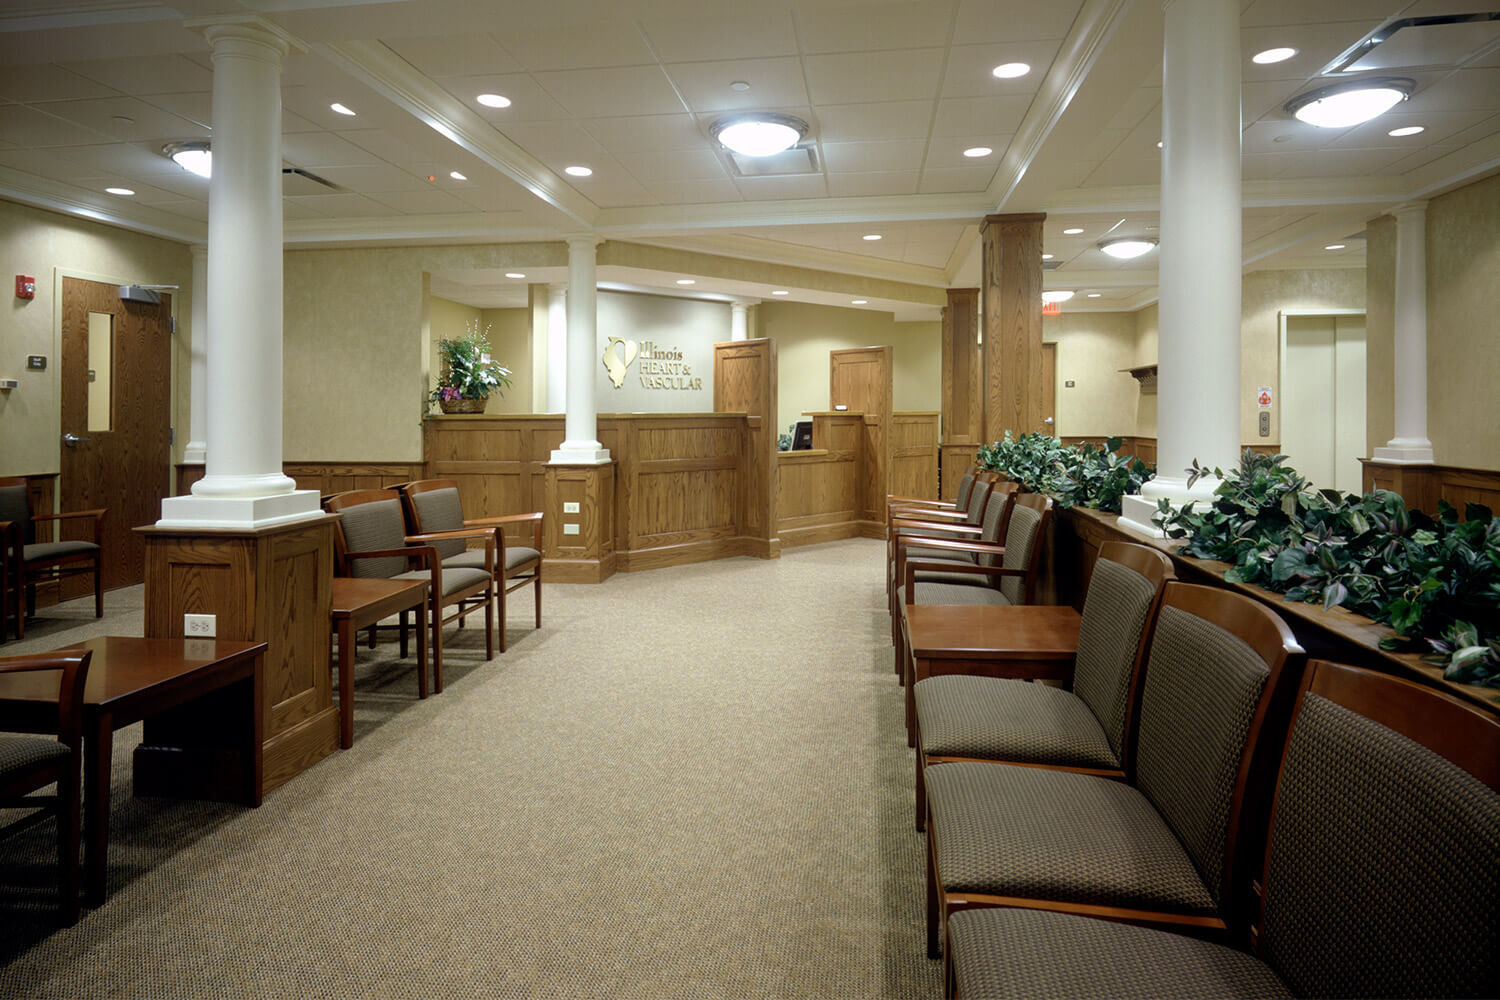 Illinois Heart & Vascular waiting room